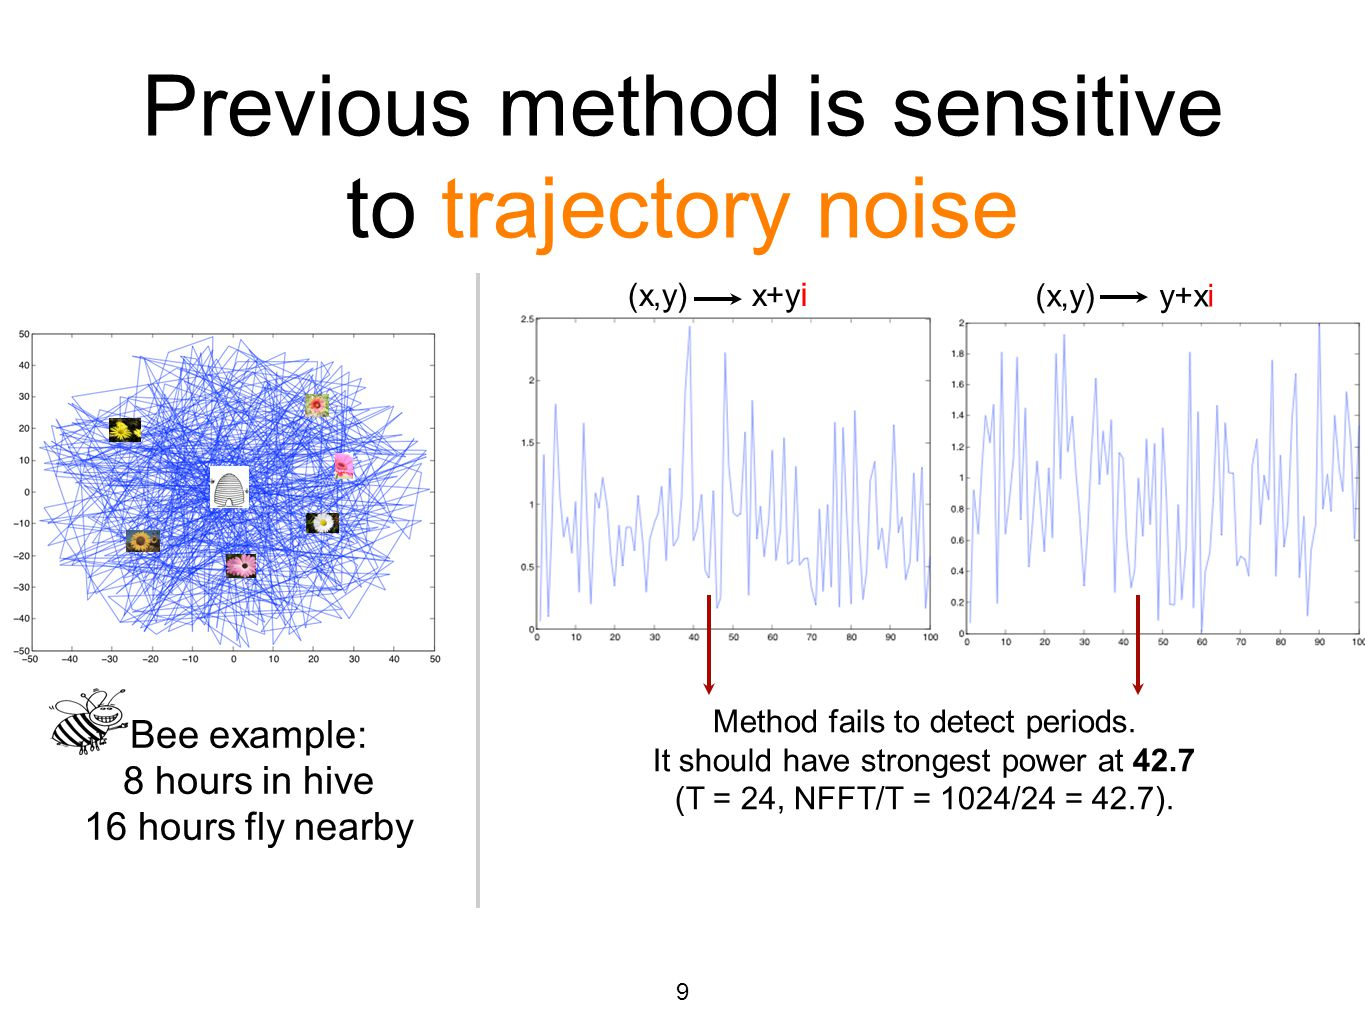 Previous method is sensitive to trajectory noise